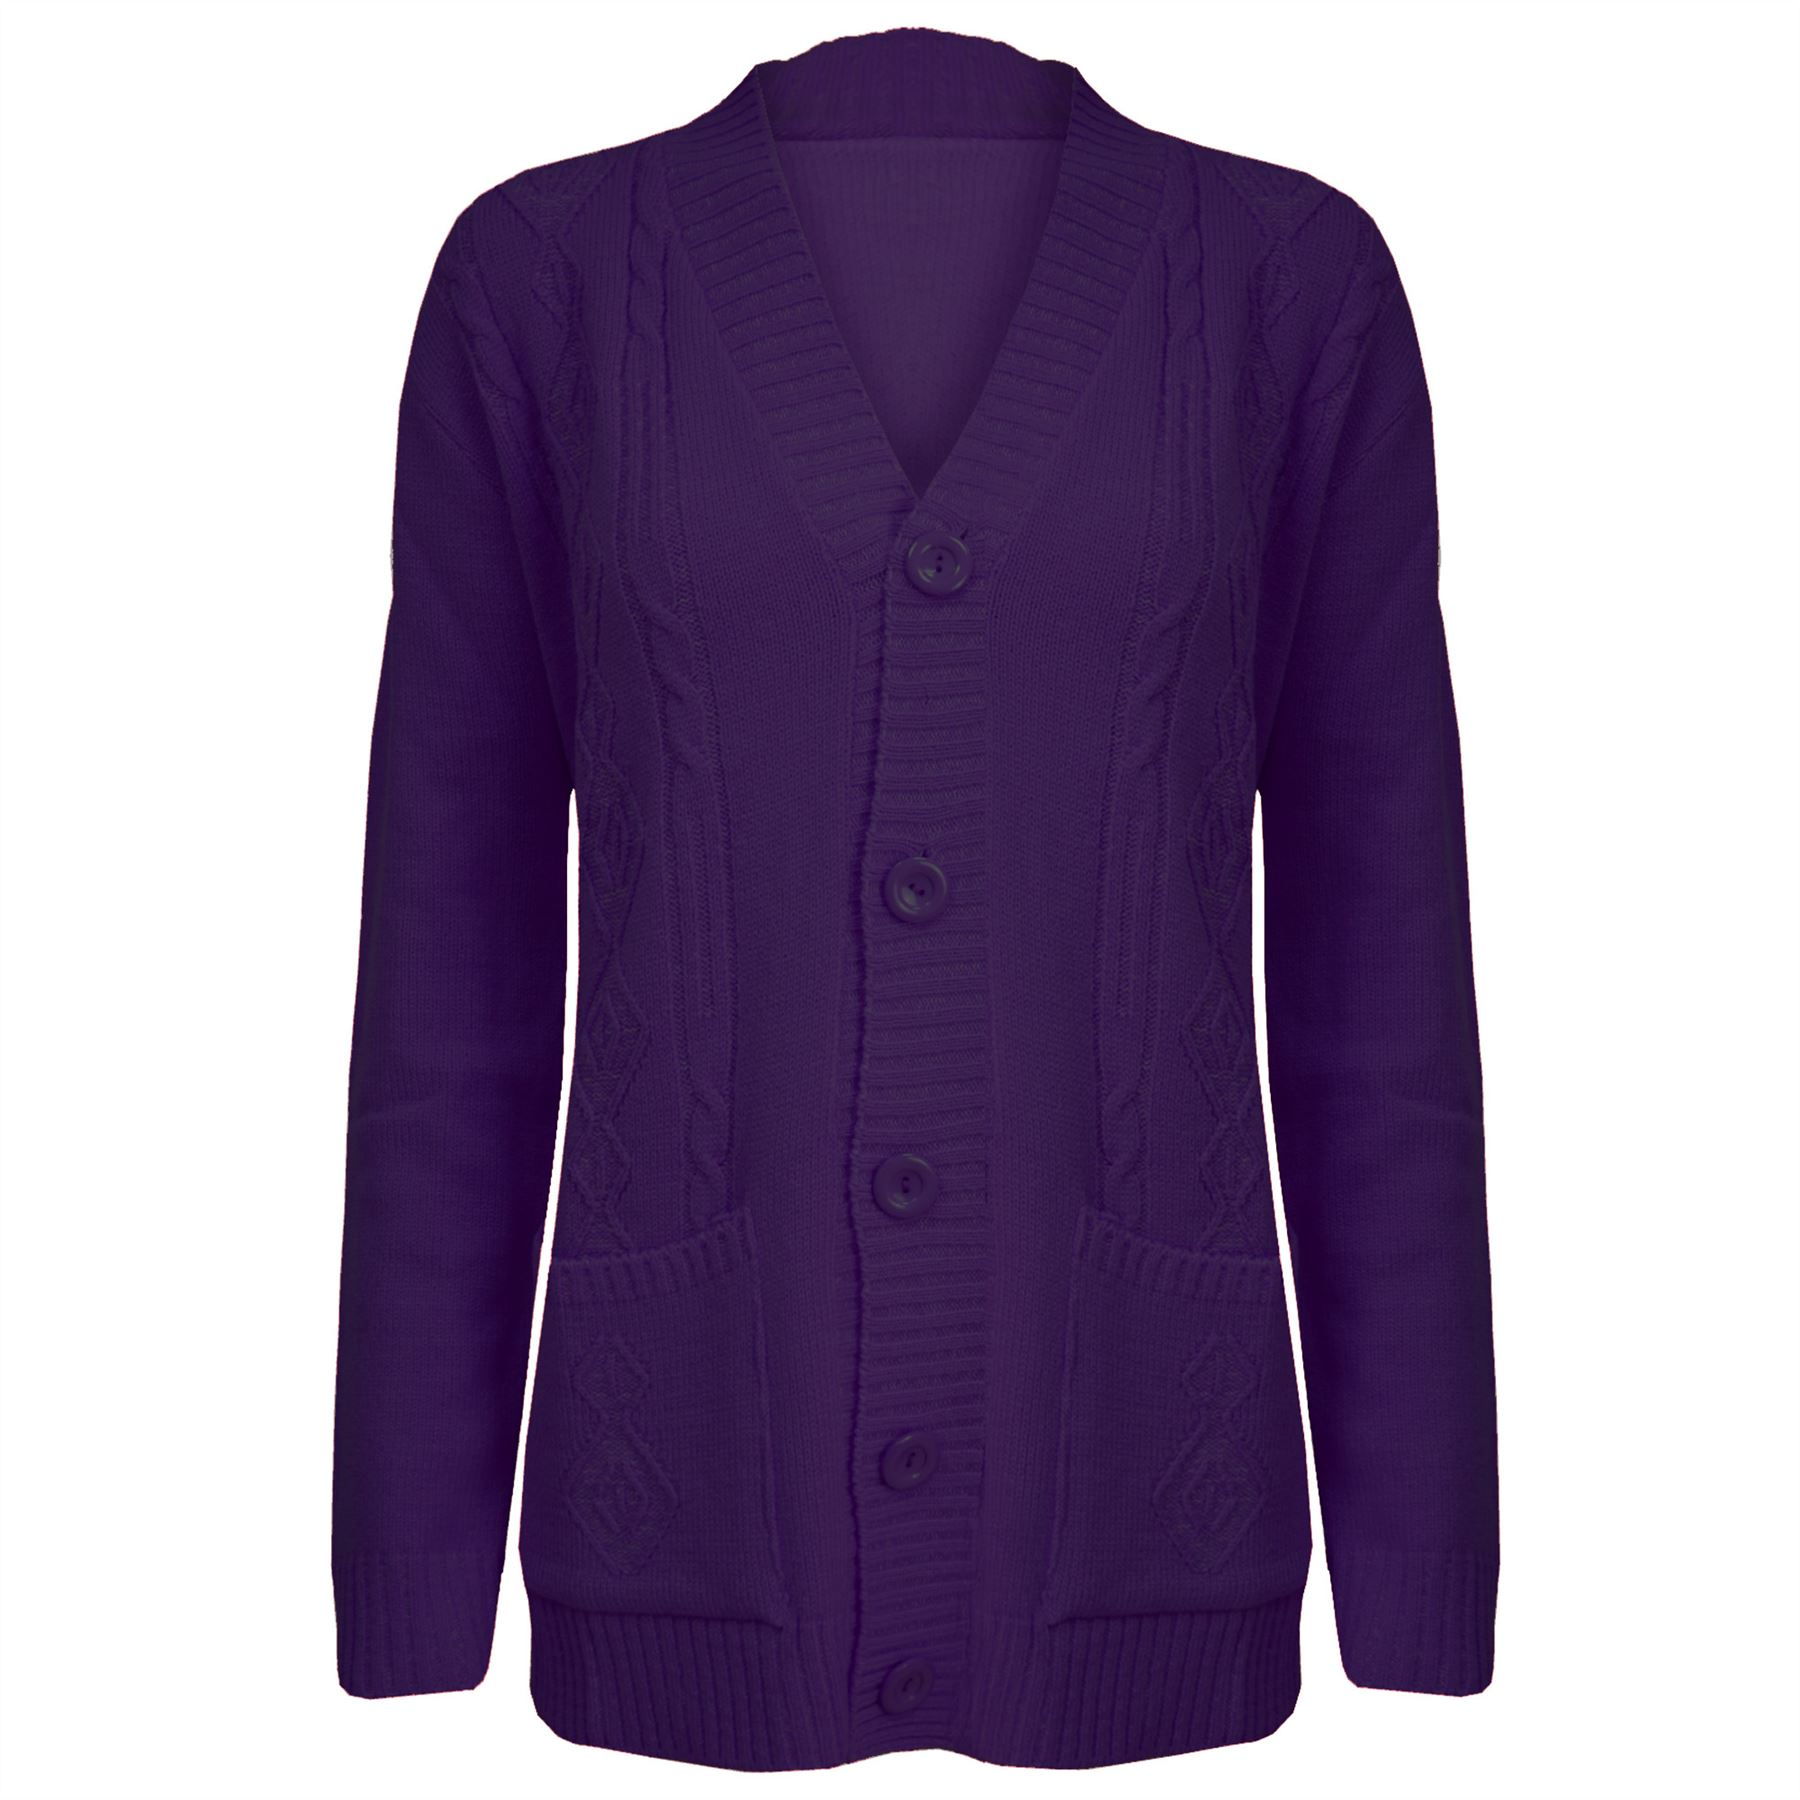 Women-Grandad-Cardigan-Ladies-Button-Up-Long-Sleeve-Chunky-Cable-Knit-Pocket-Top